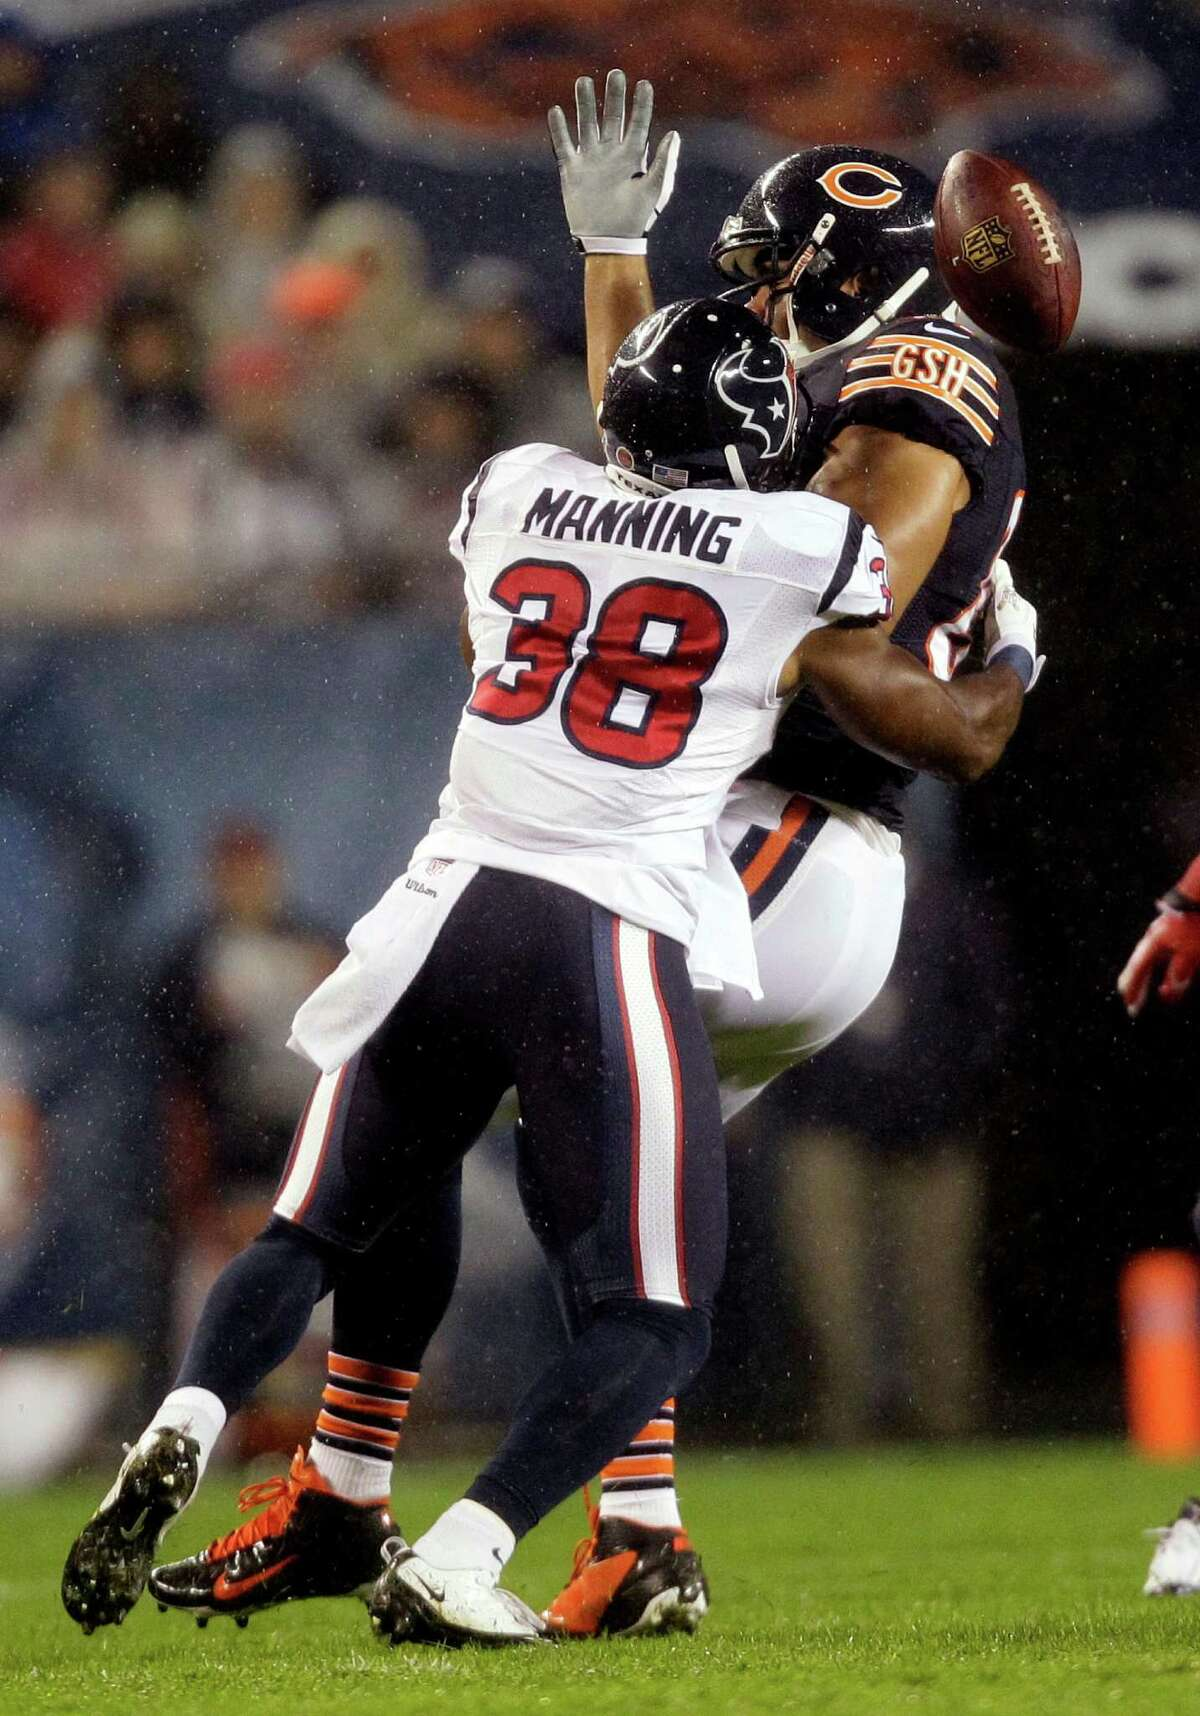 Chicago Bears tight end Kellen Davis fumbles as he is tackled by Houston Texans safety Danieal Manning (38) during the first half an NFL football game, Sunday, Nov. 11, 2012, in Chicago. (AP Photo/Nam Y. Huh)